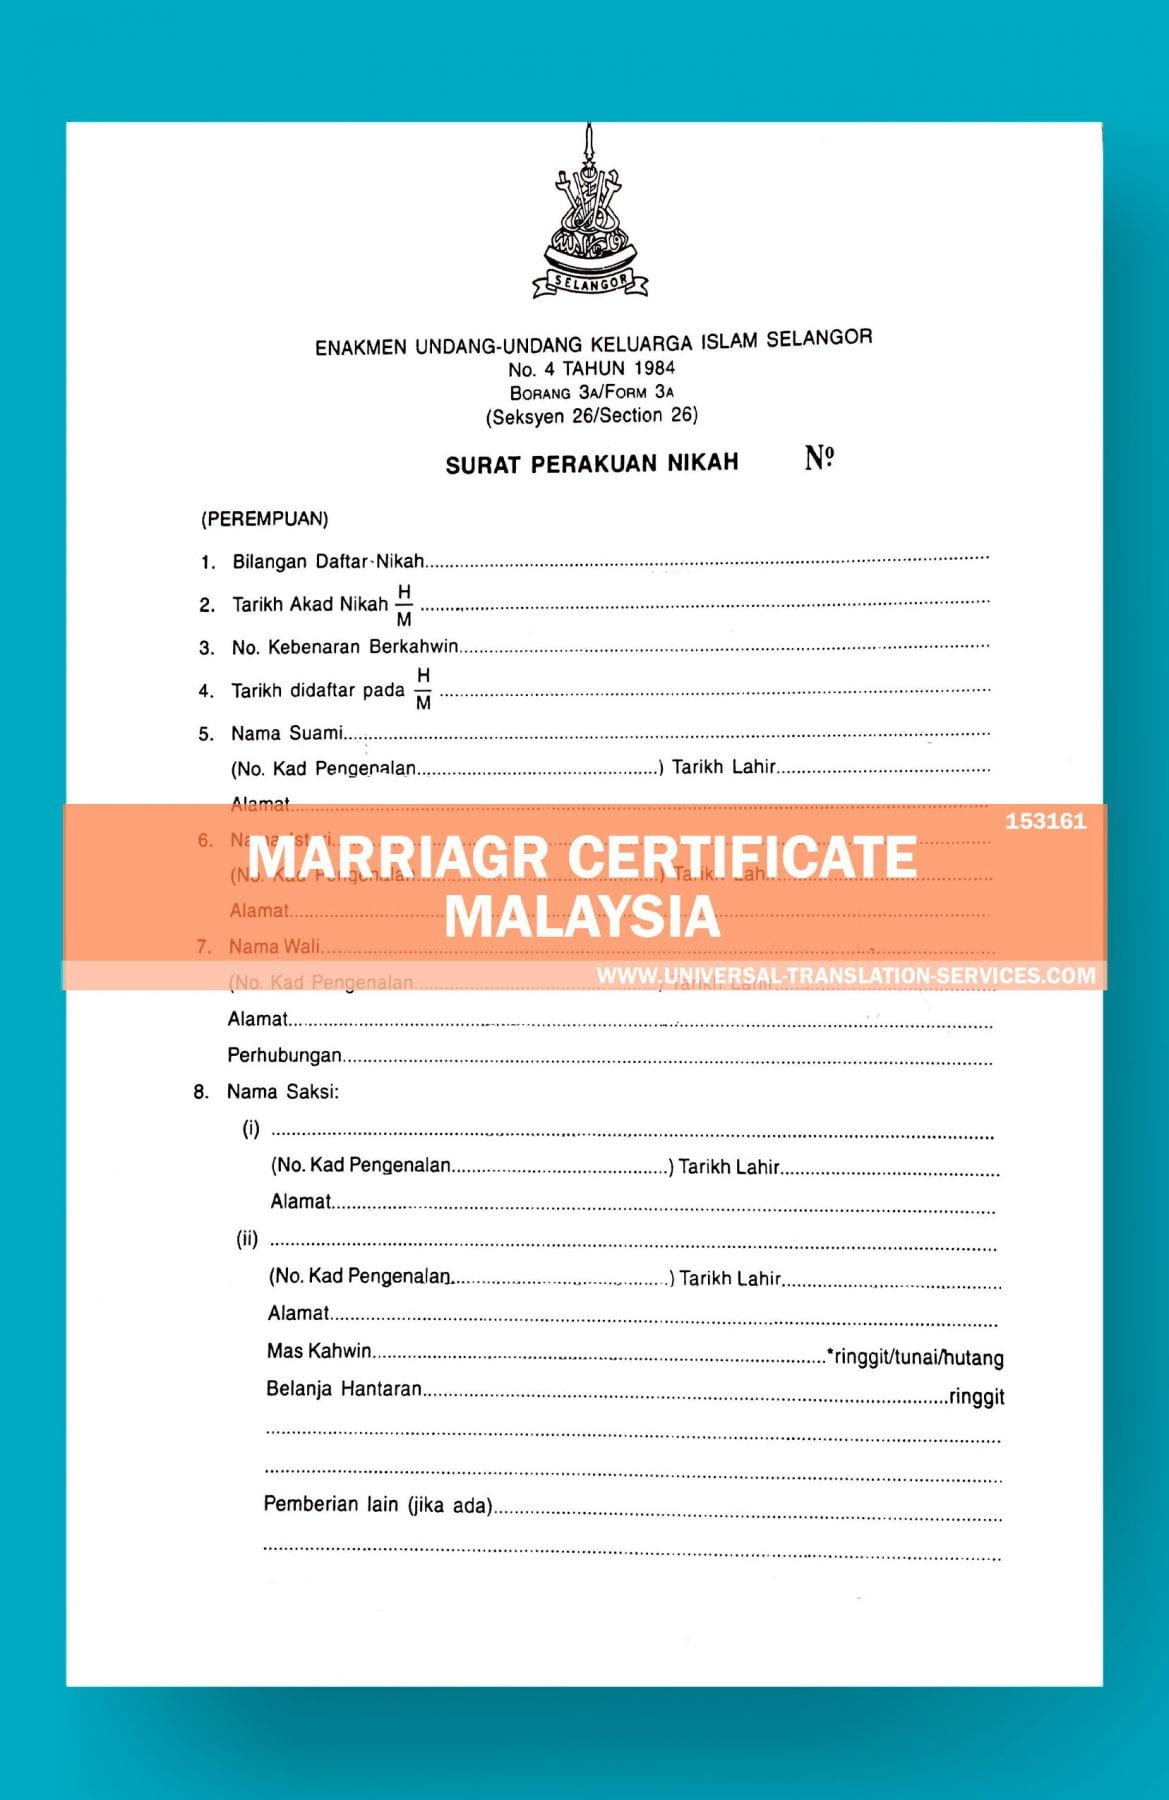 Malaysia Marriage Certificate Translation Template By Ata Pertaining To Free Marriage Certificate Translation Template